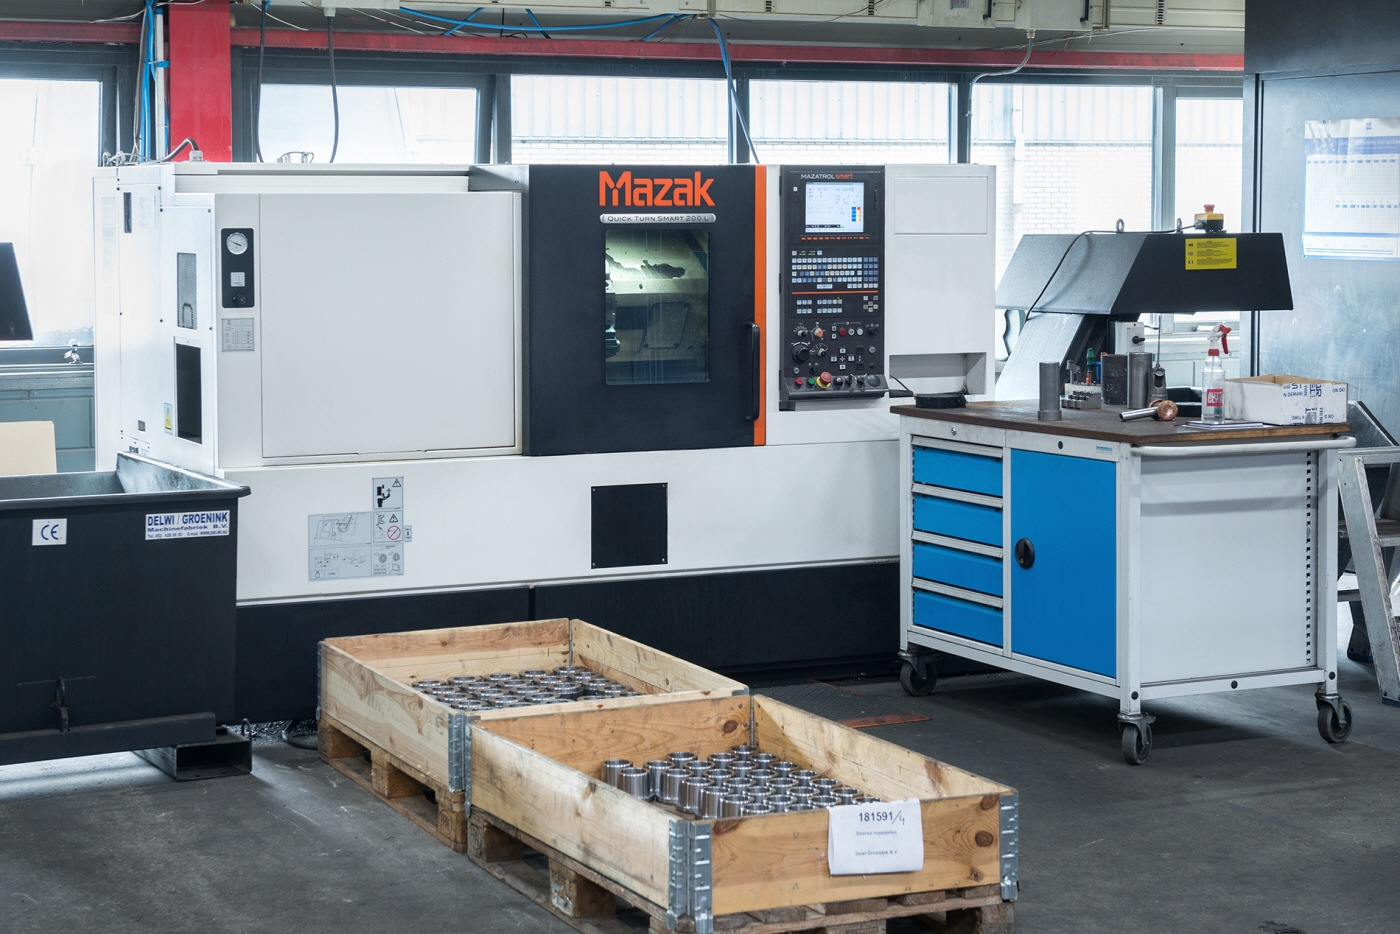 cnc draaien mazak quick turn nexus 250 II M